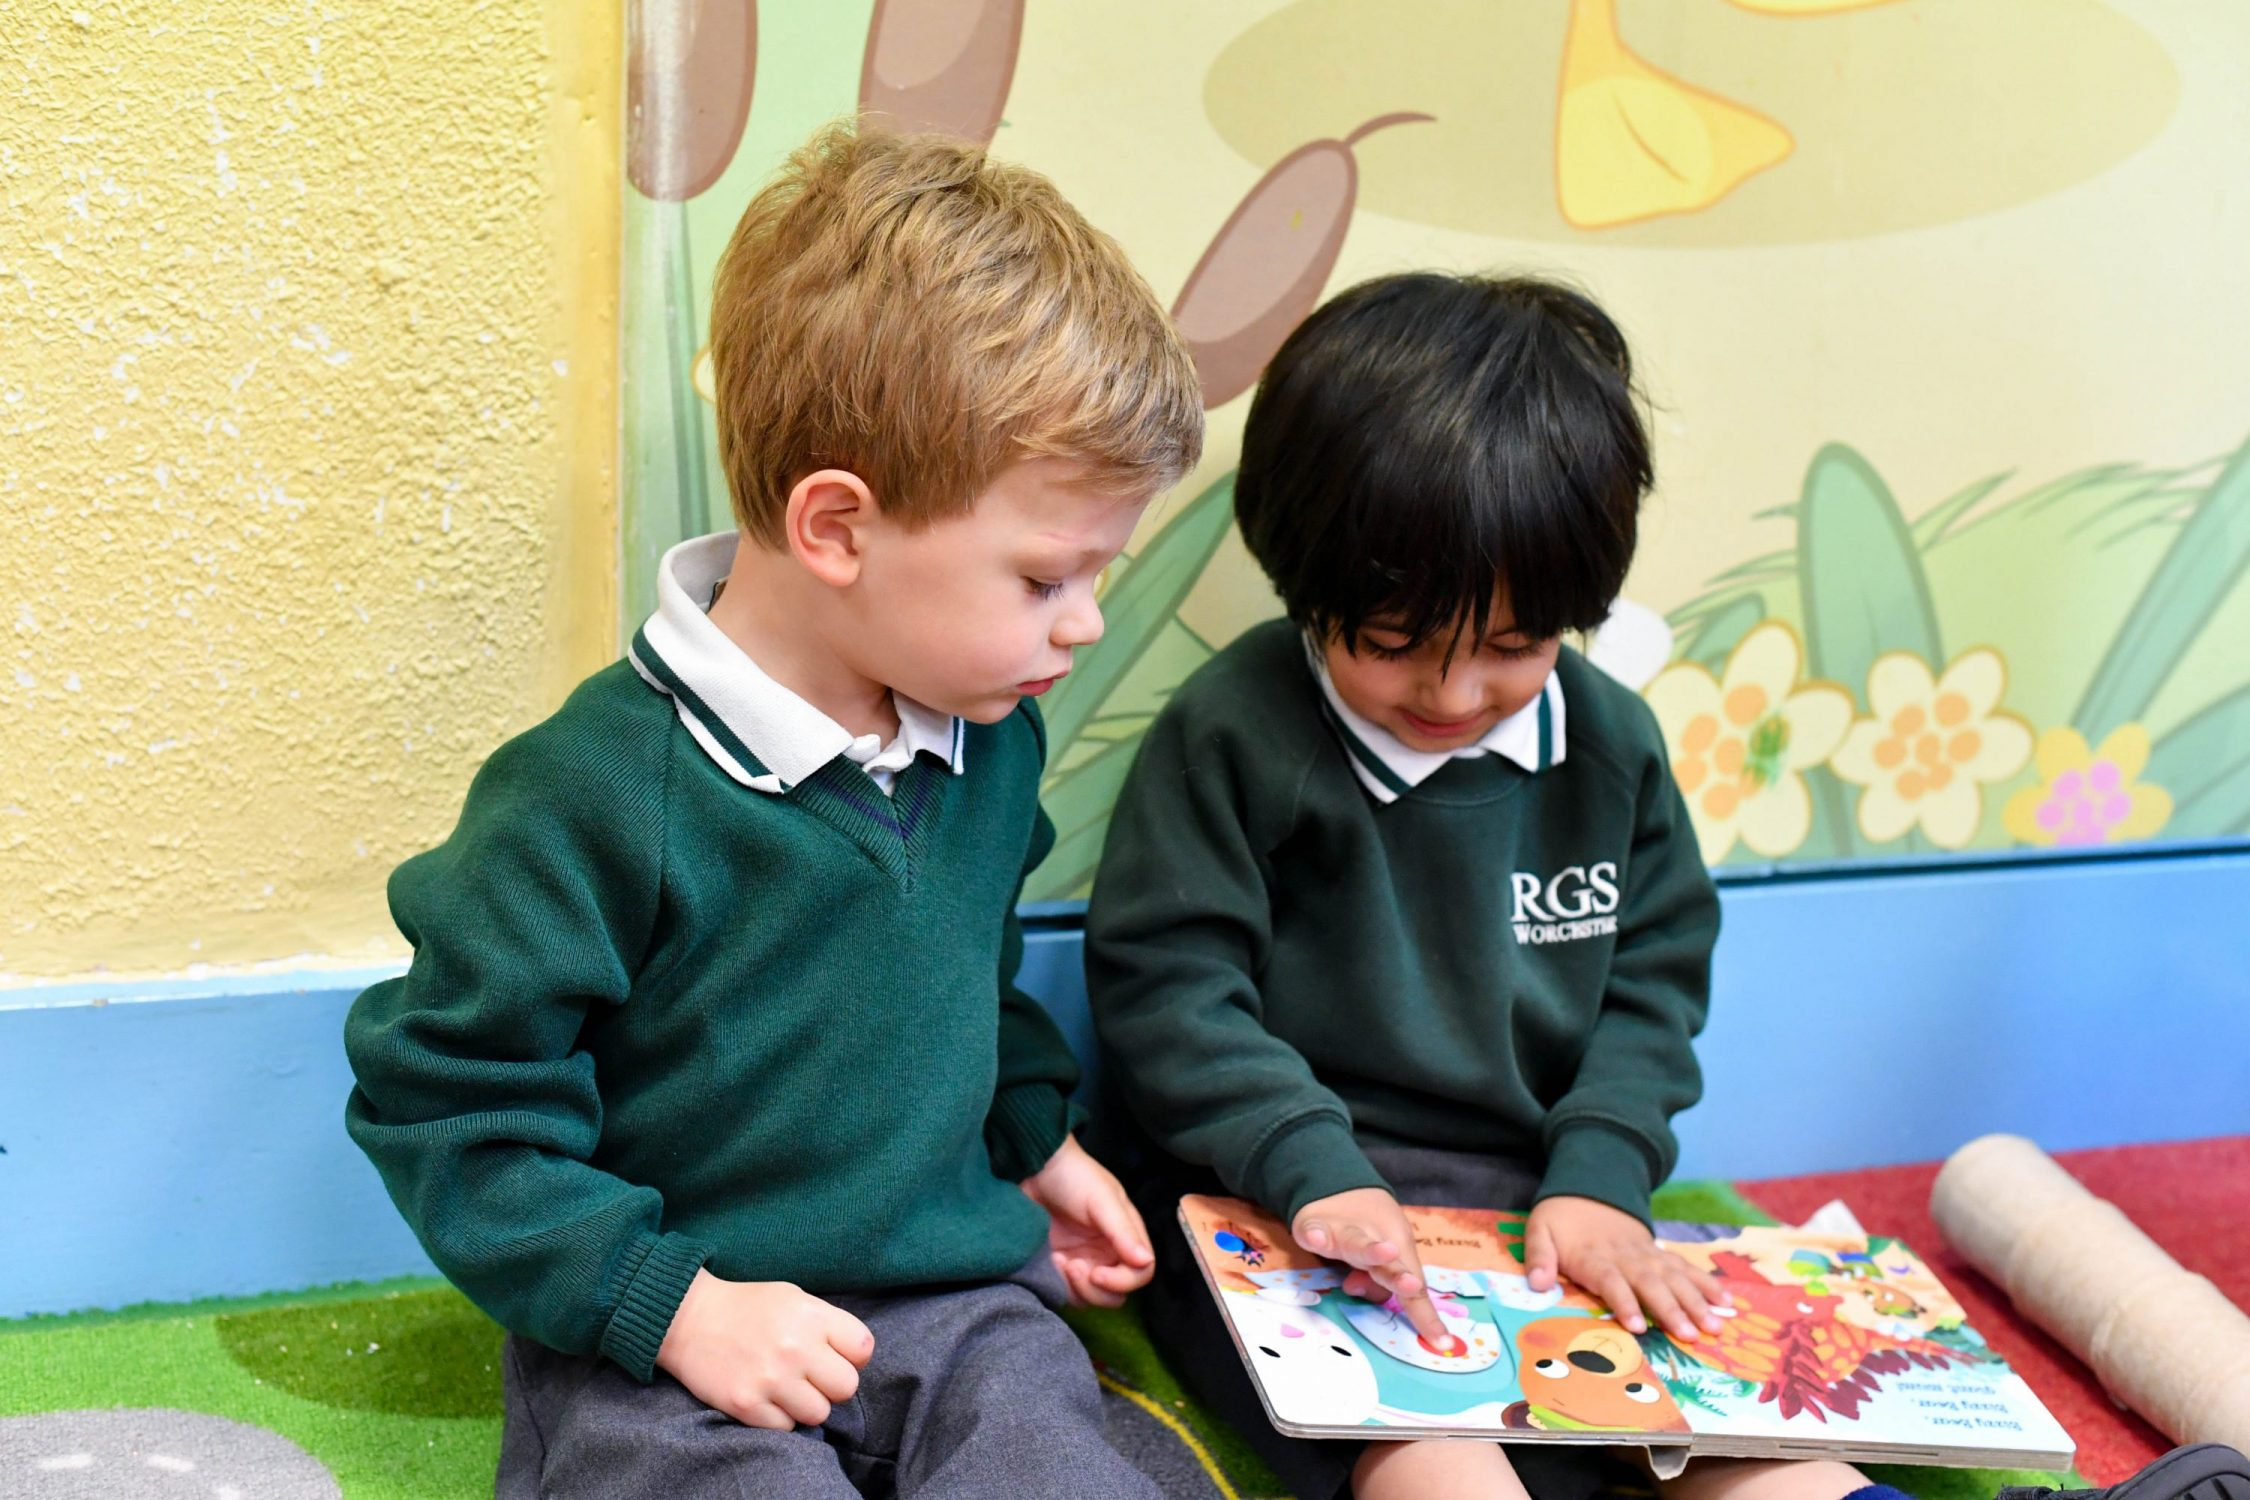 Early years children sat together reading a book